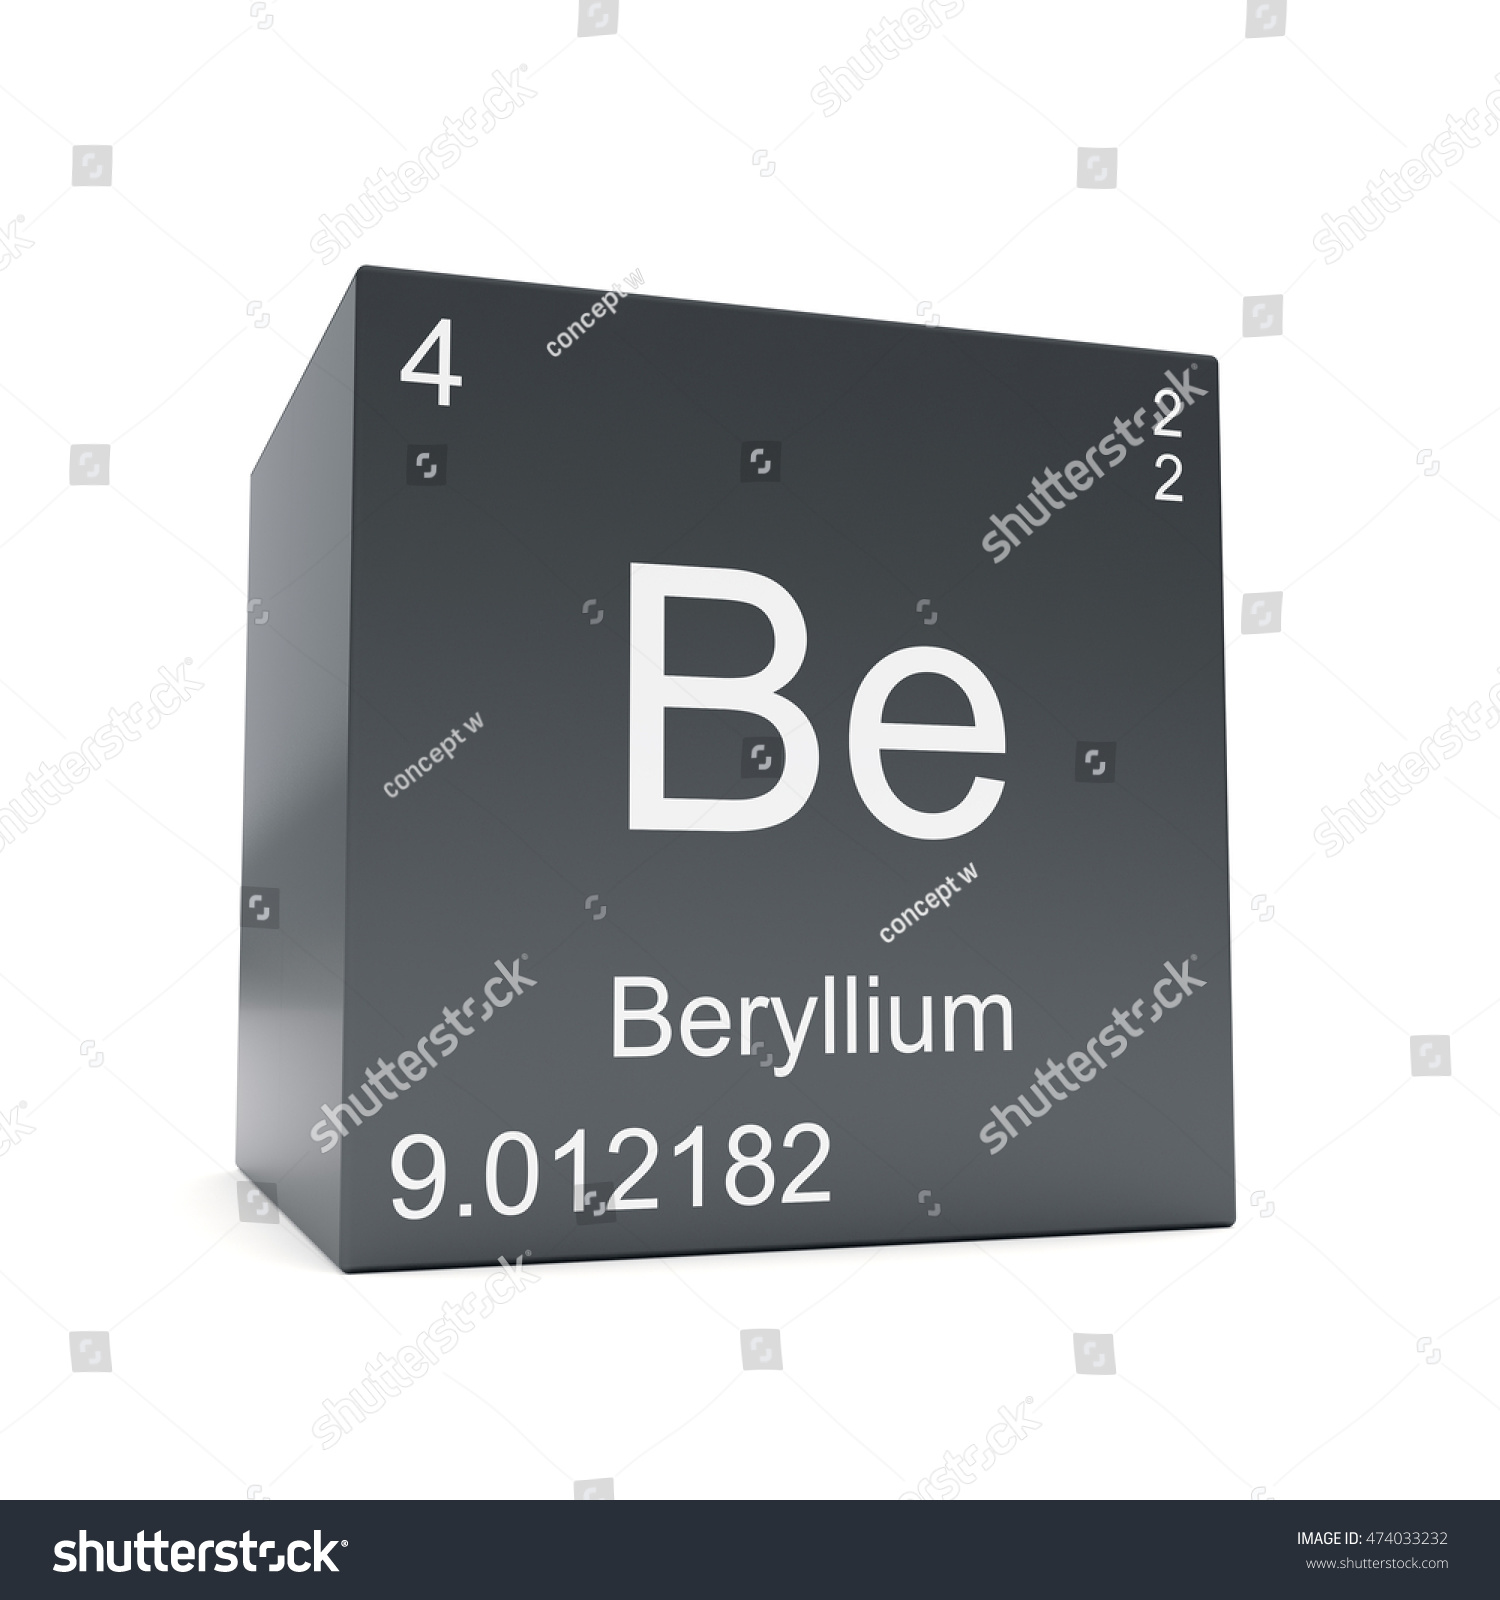 Beryllium chemical element symbol periodic table stock beryllium chemical element symbol from the periodic table displayed on black cube 3d render biocorpaavc Images